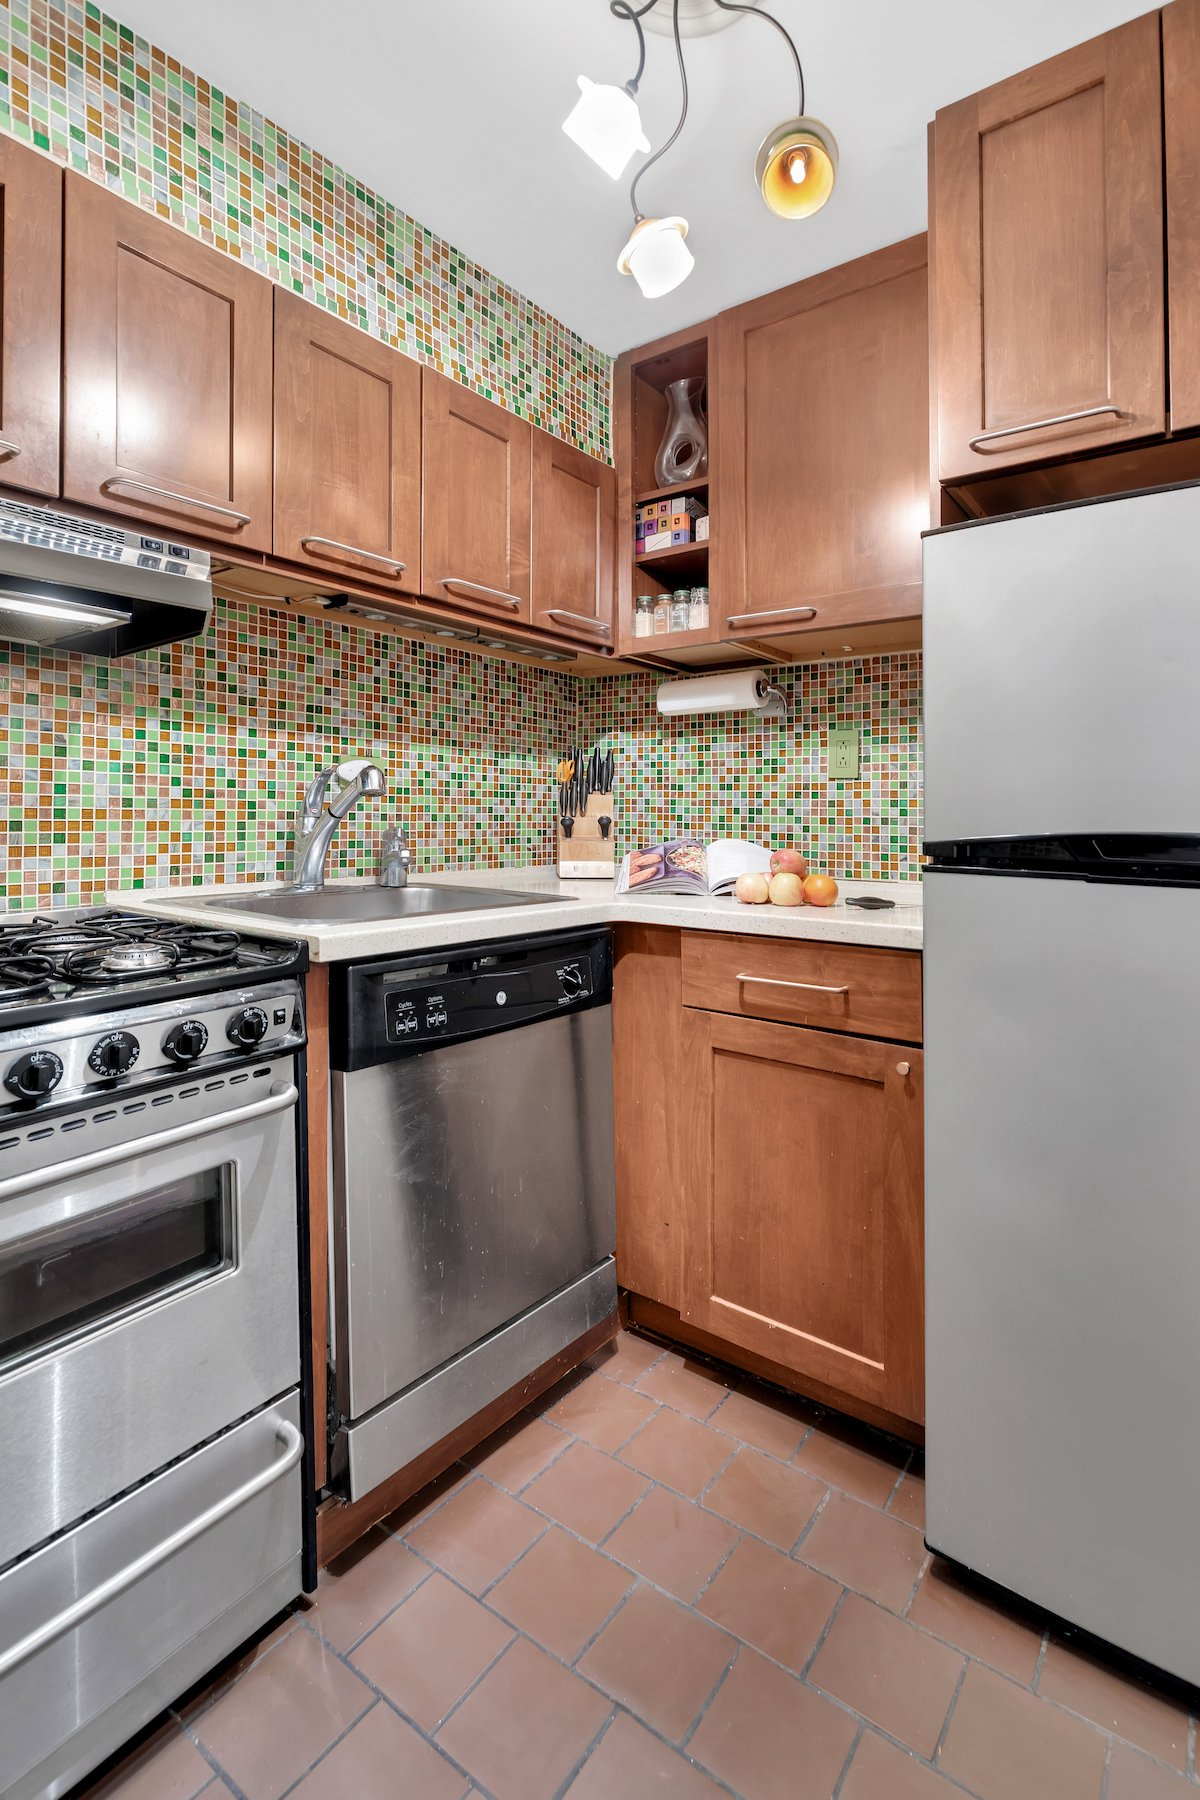 169 West 73rd Street, cool listings, co-ops, Upper West Side